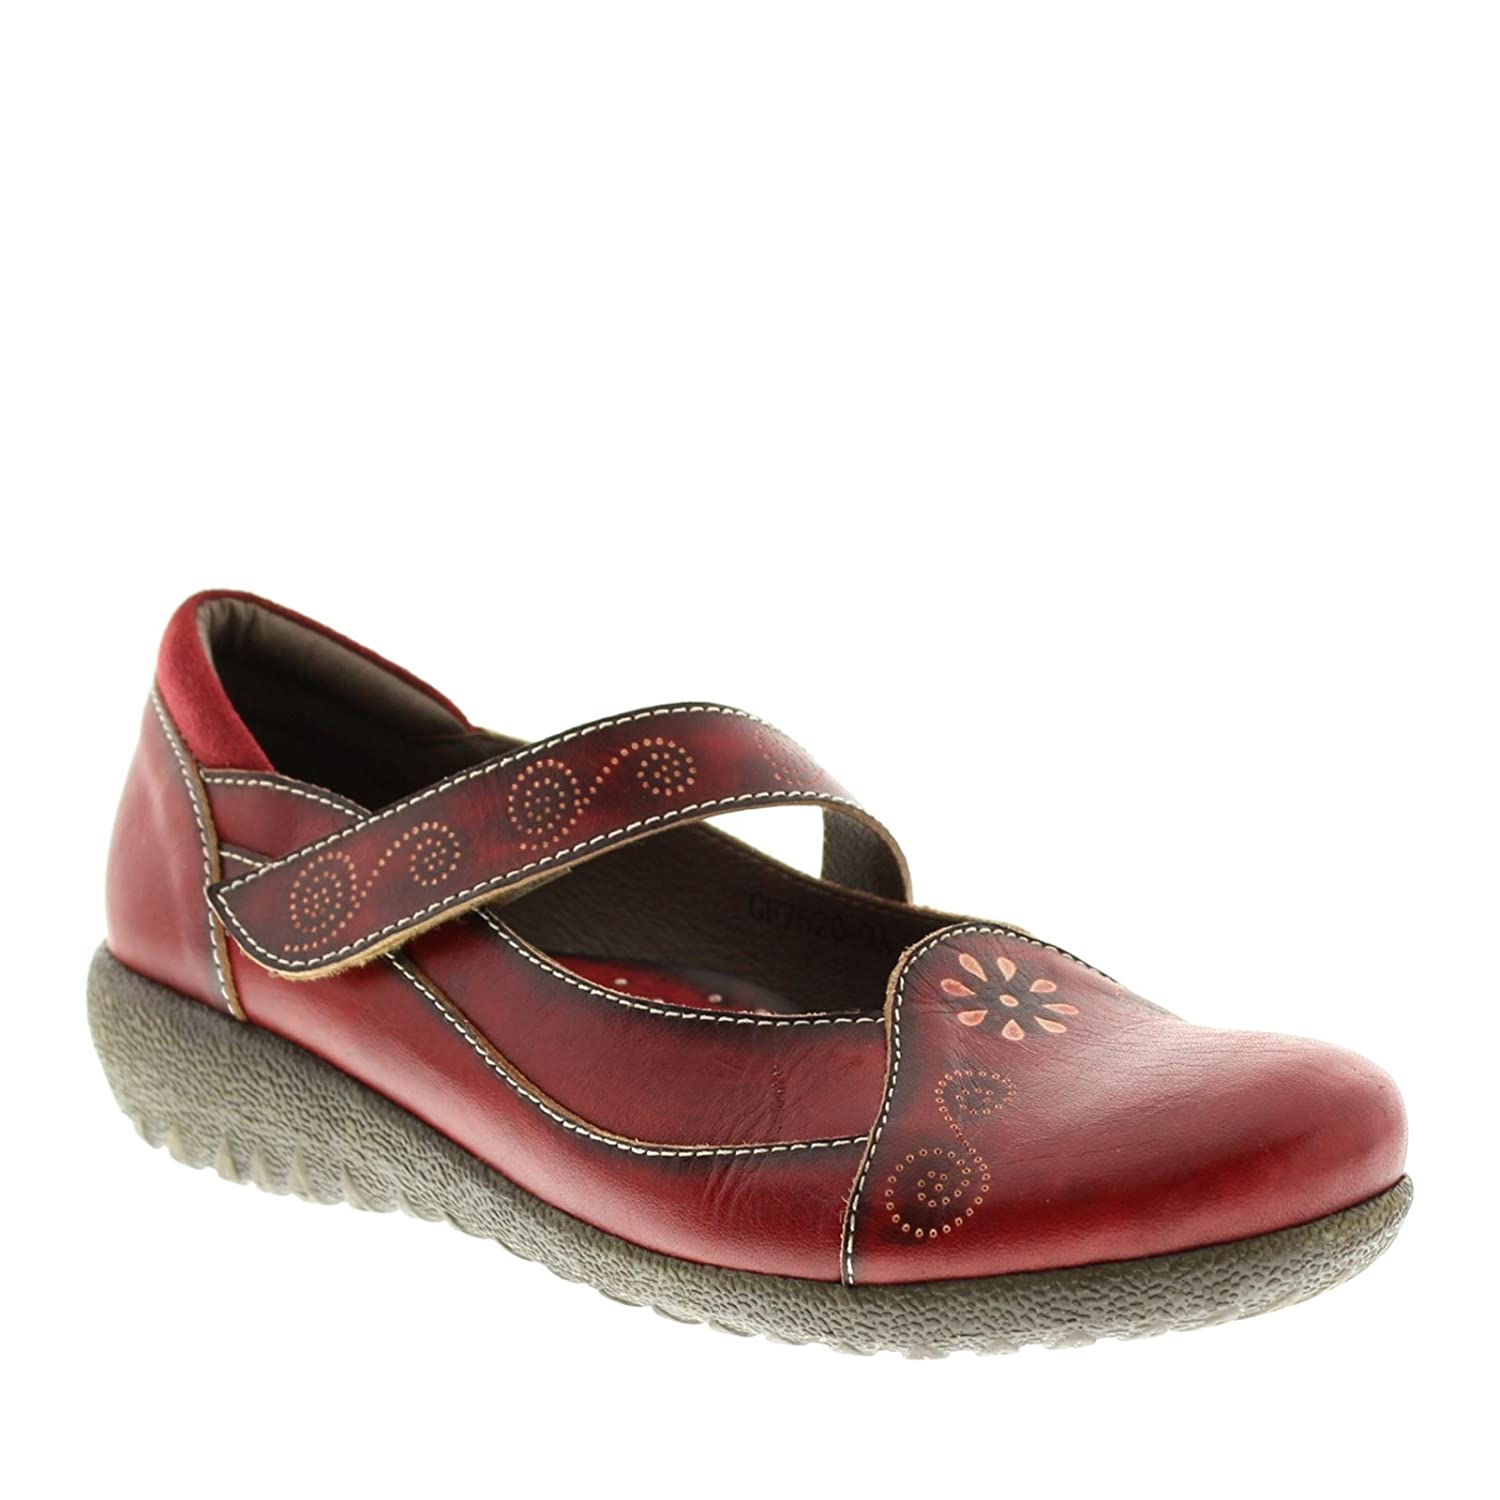 Spring Step Womens Tayla Mary Janes